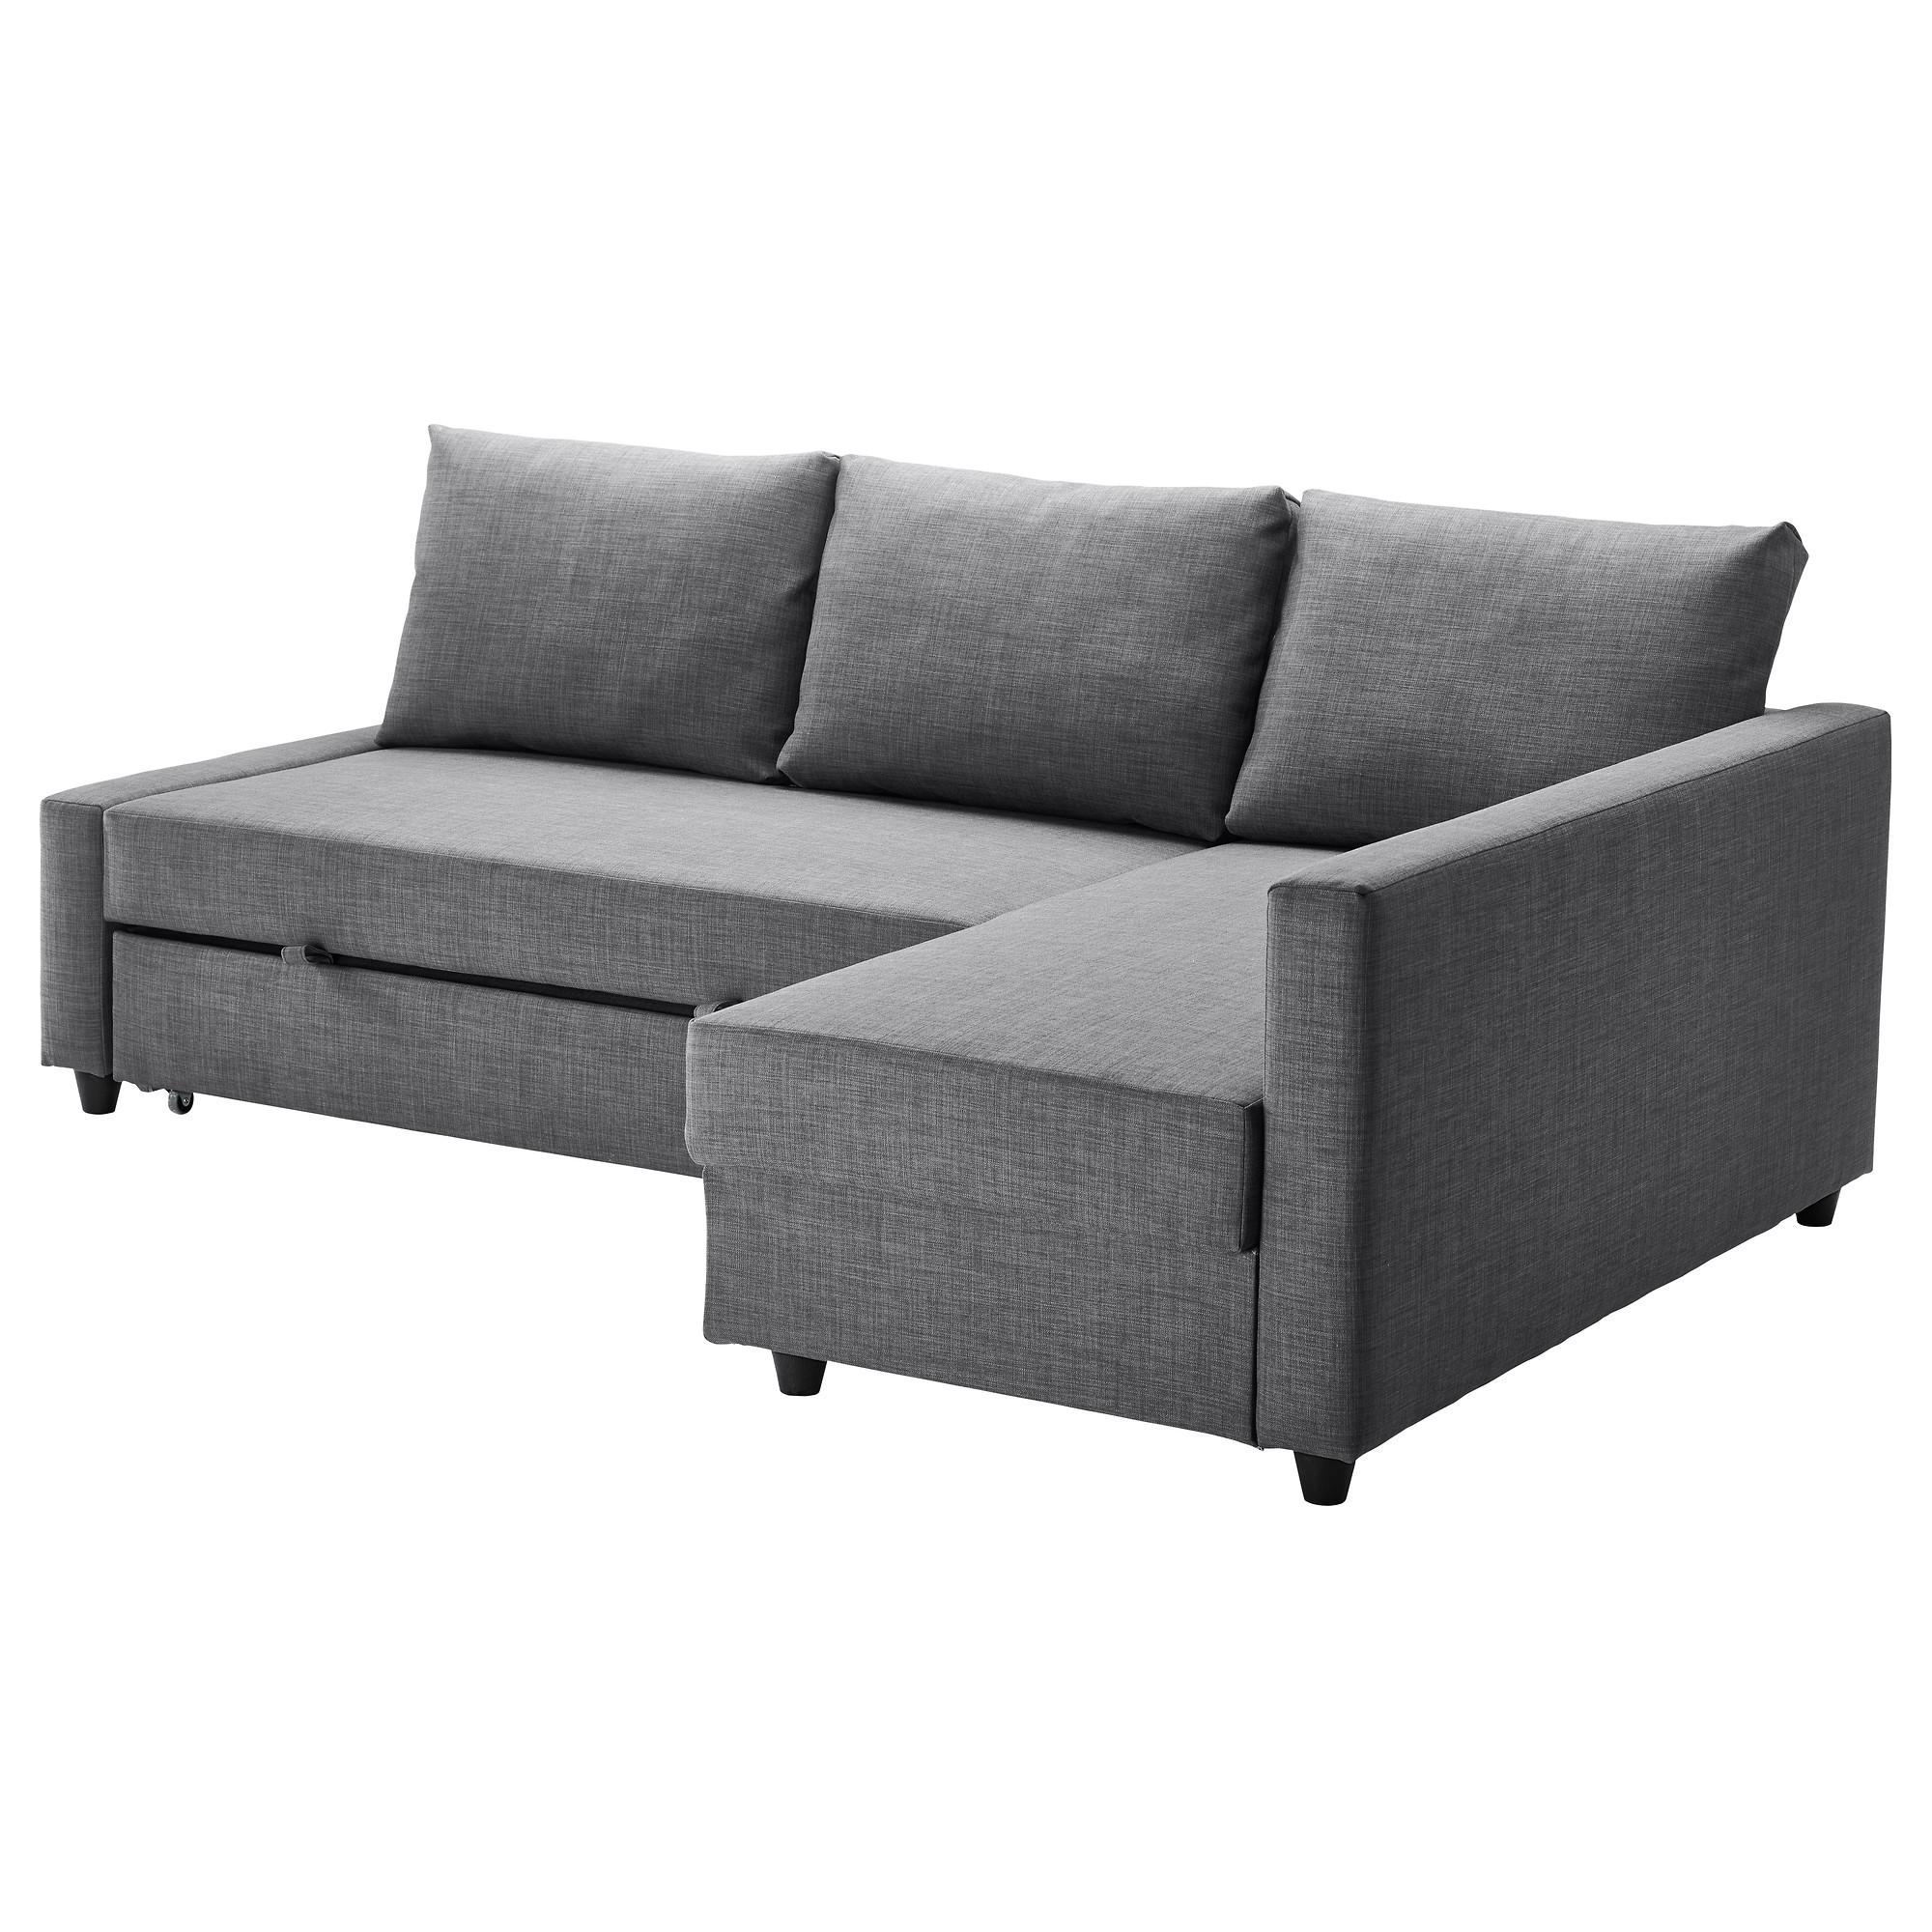 Sleeper Sectional 3 Seat W Storage Friheten Skiftebo Dark Gray